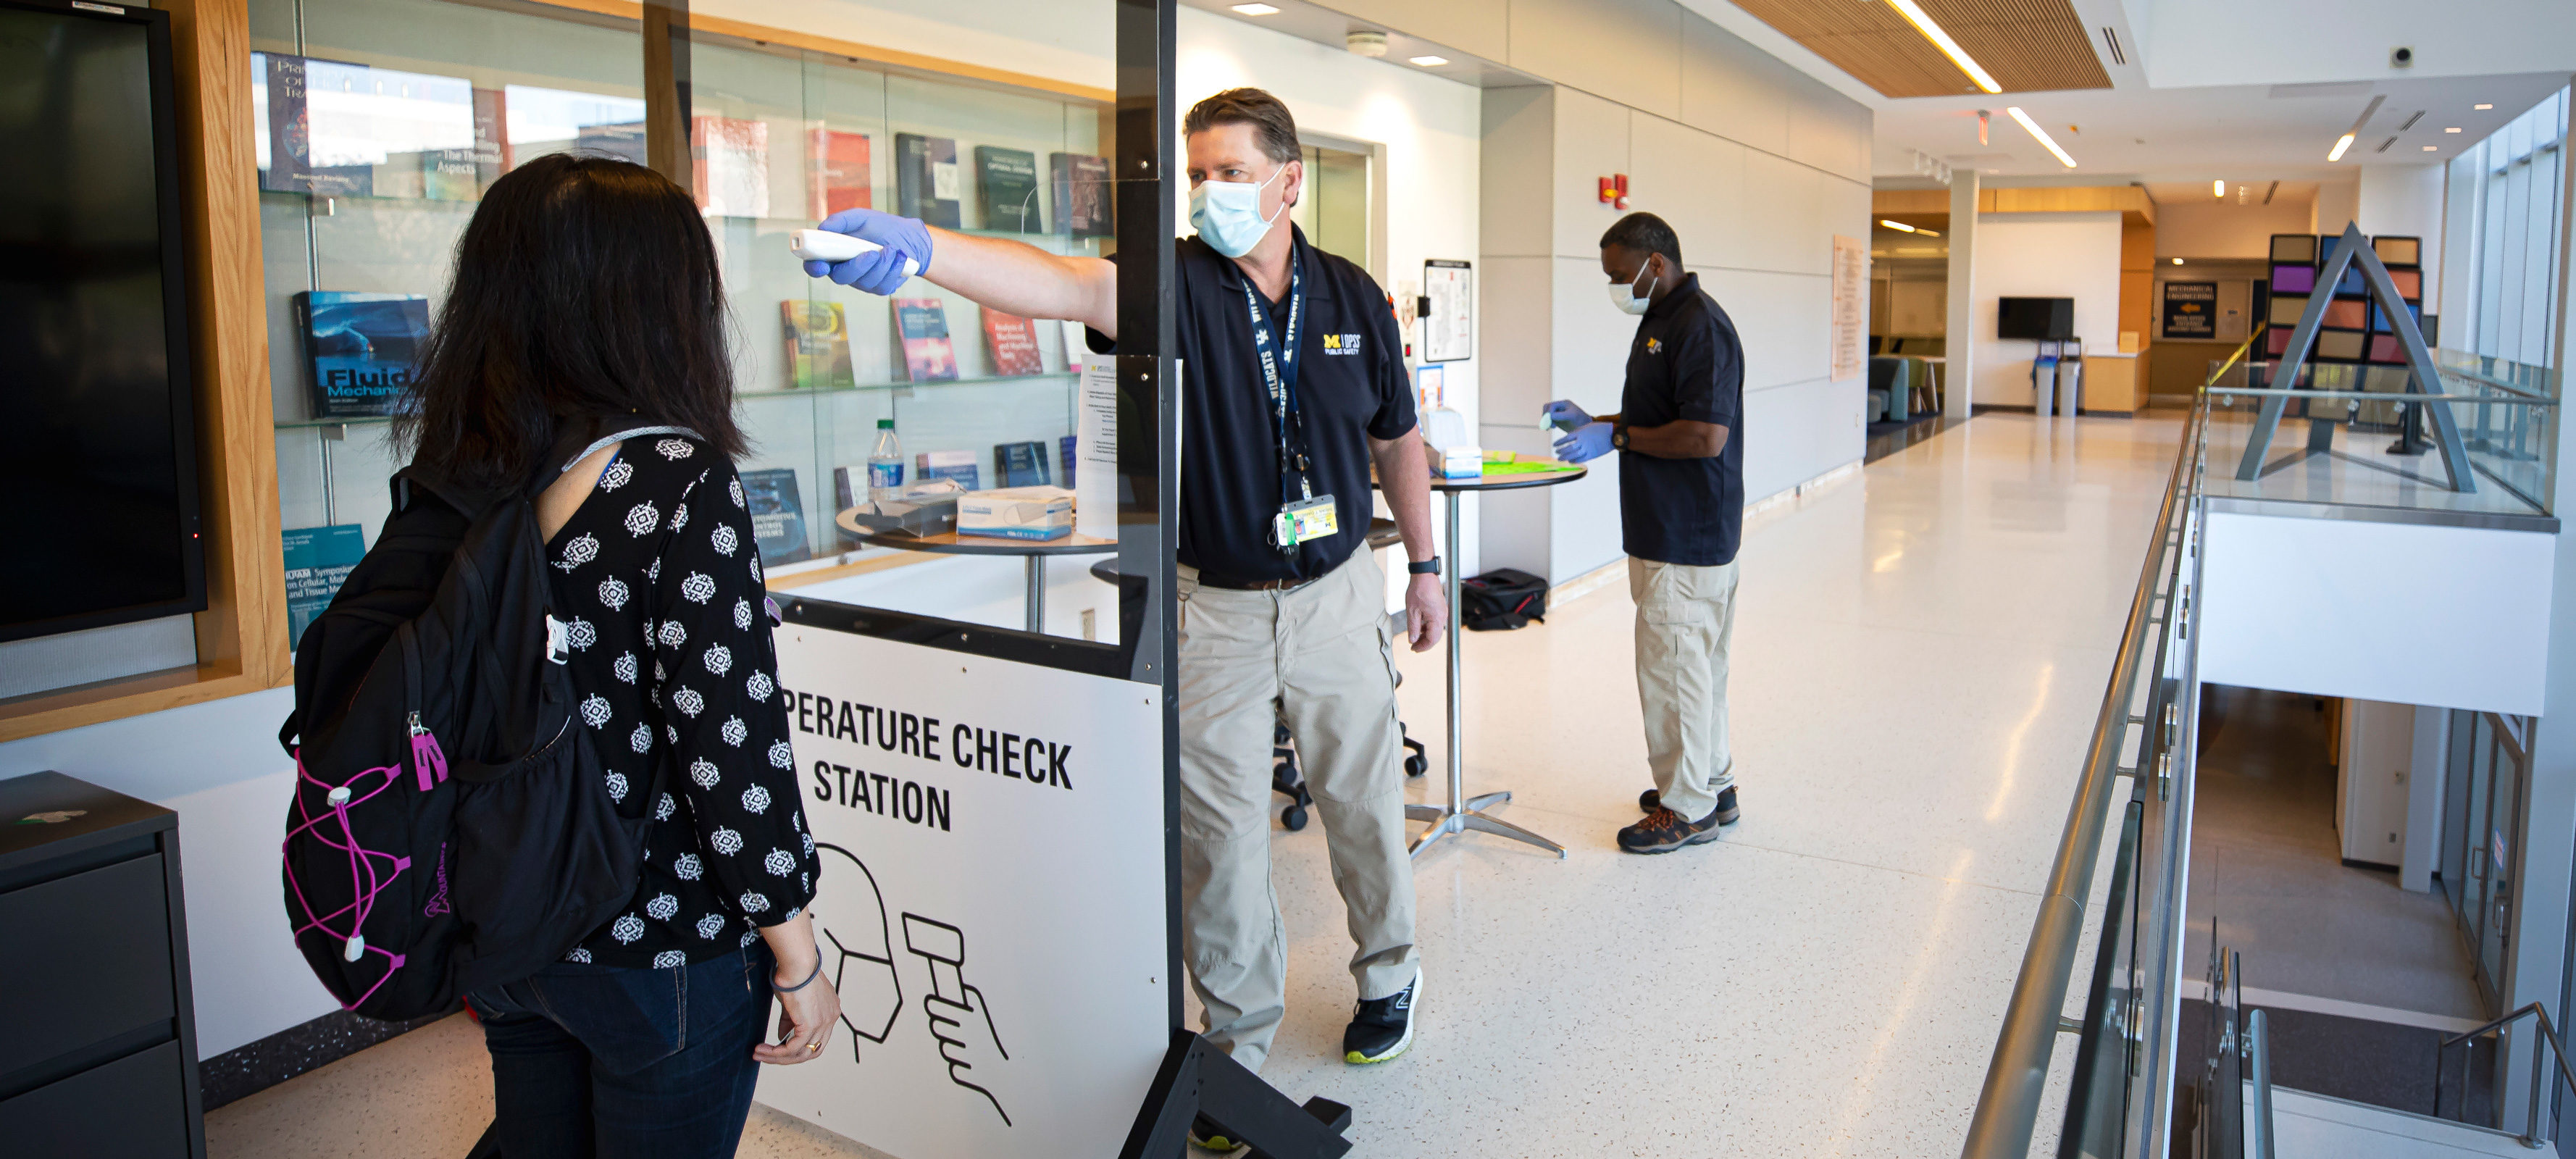 Shilva Shrestha, Environmental Engineering PhD Student, has her temperature checked by Bryan Daniels, DPSS Quartermaster, at the entrance the G.G. Brown Building on North Campus of the University of Michigan in Ann Arbor, MI on May 26, 2020.